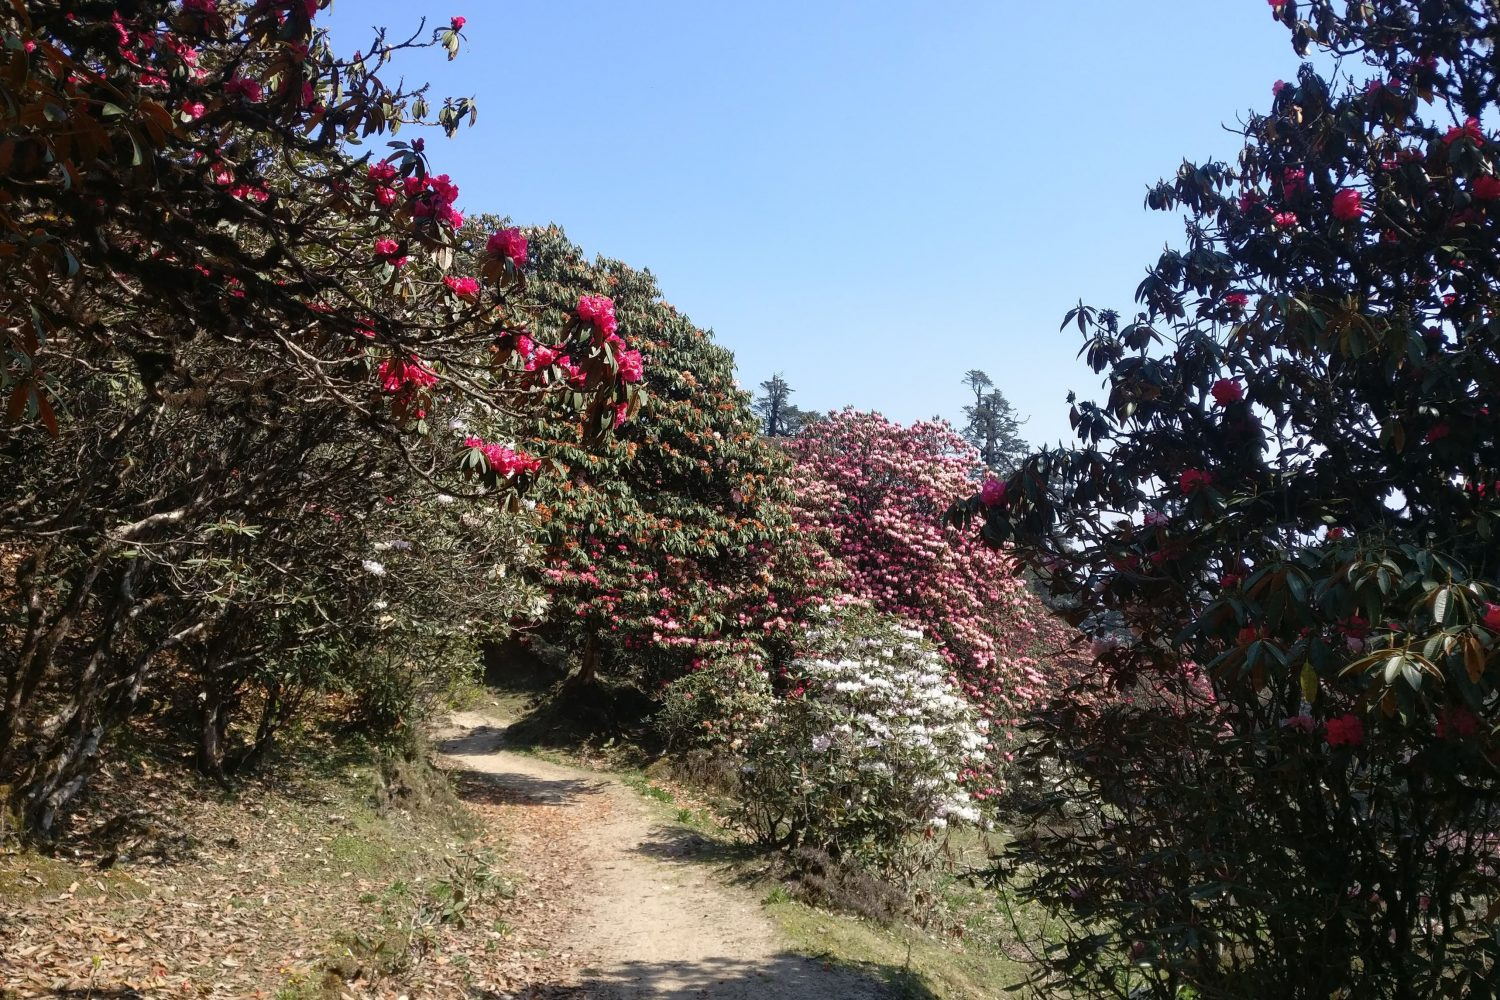 Rhododendrons on the trail on the Pikey Peak Trek